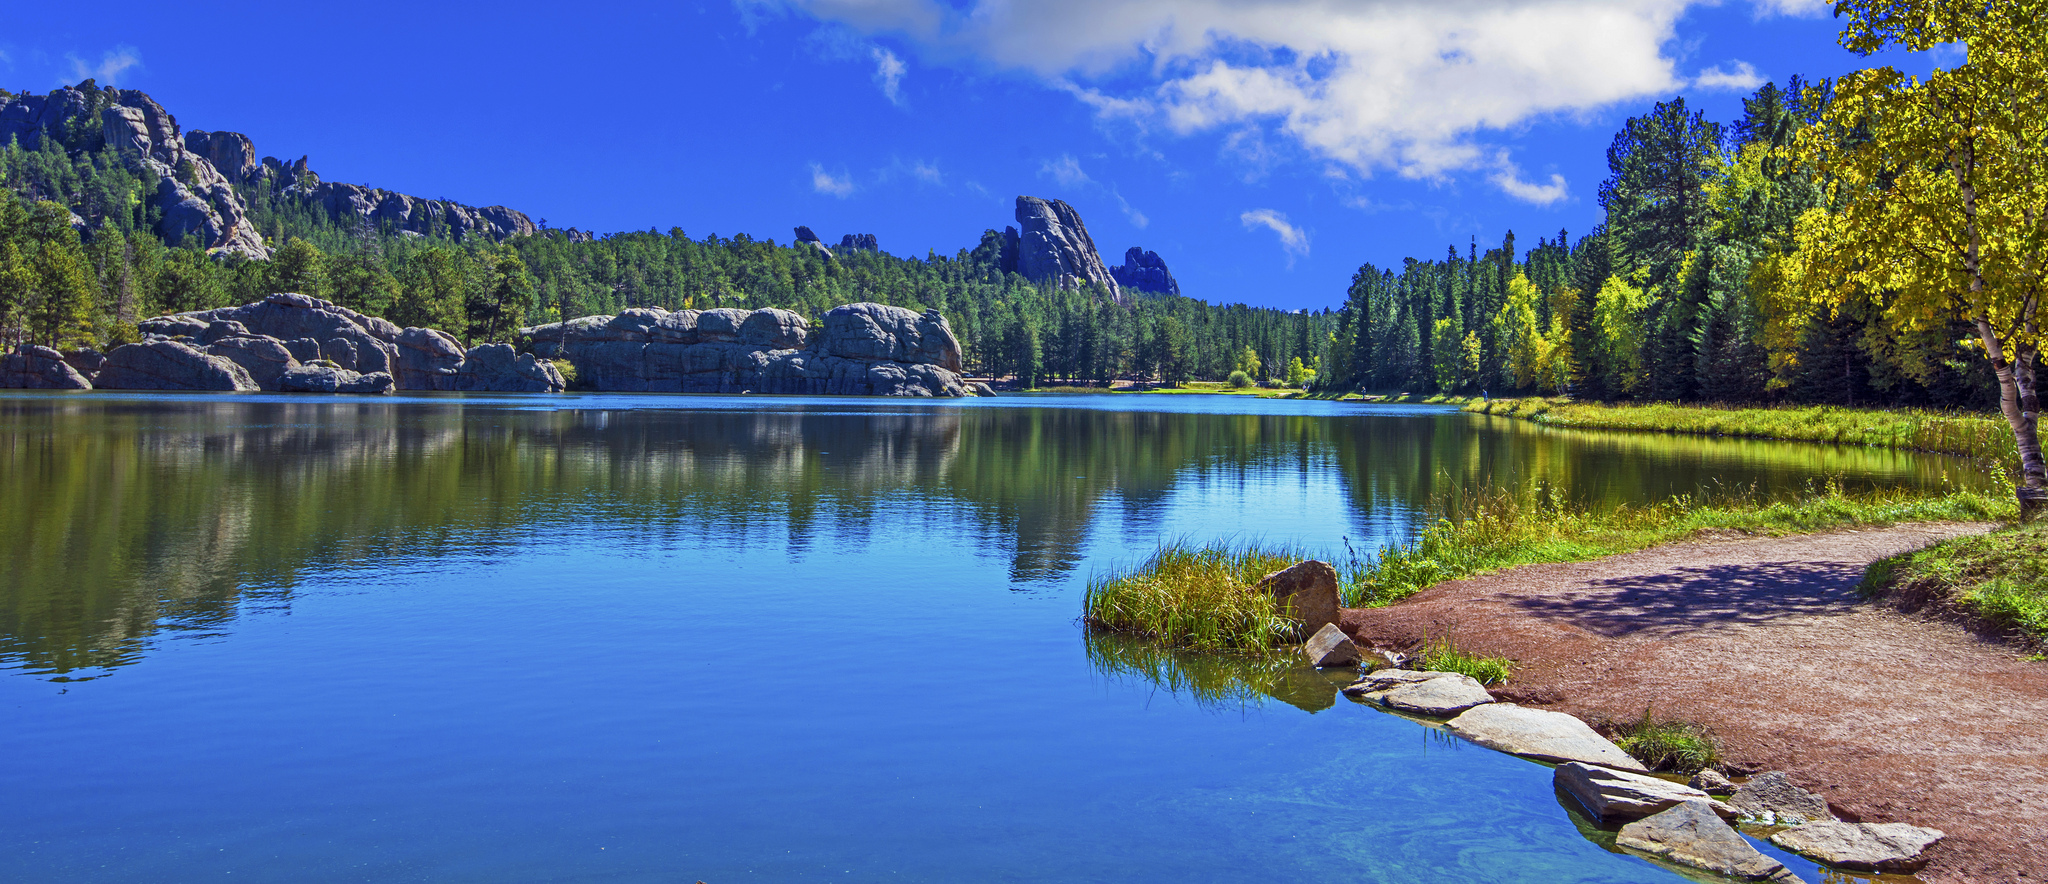 13 Little Known Spots To Relax In Nature In South Dakota